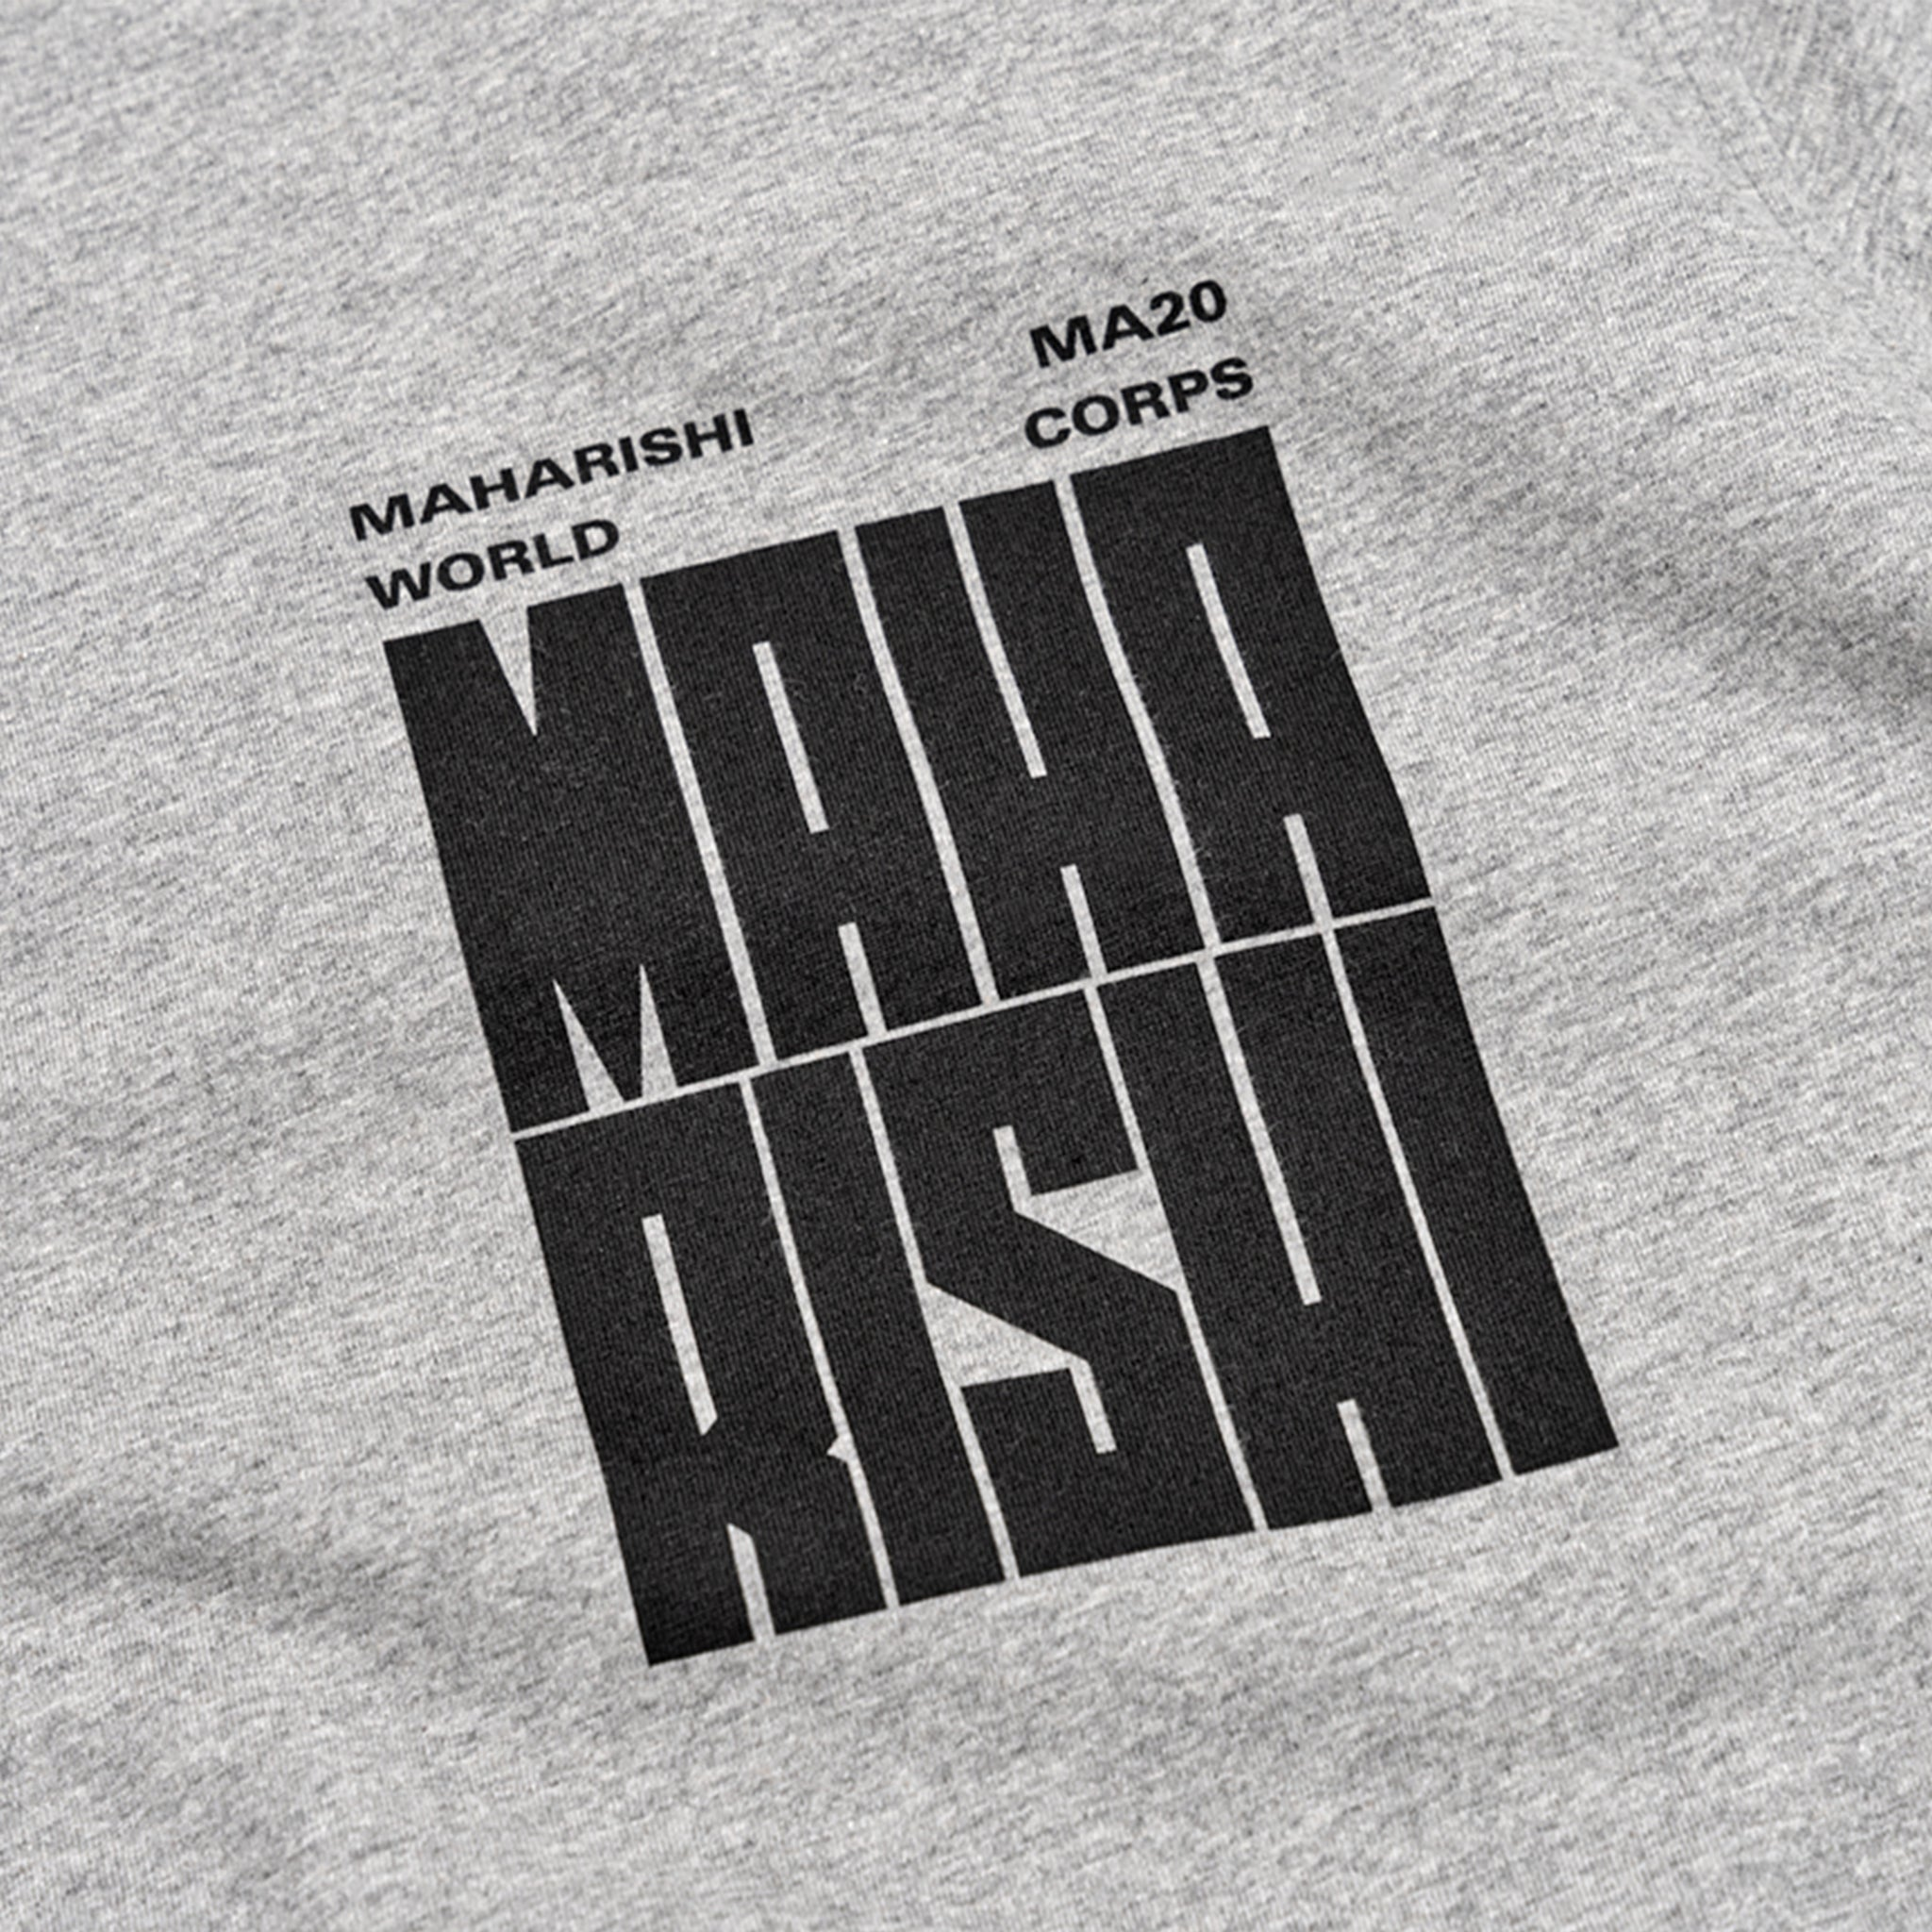 MAHARISHI WORLD CORPS S/S T-SHIRT